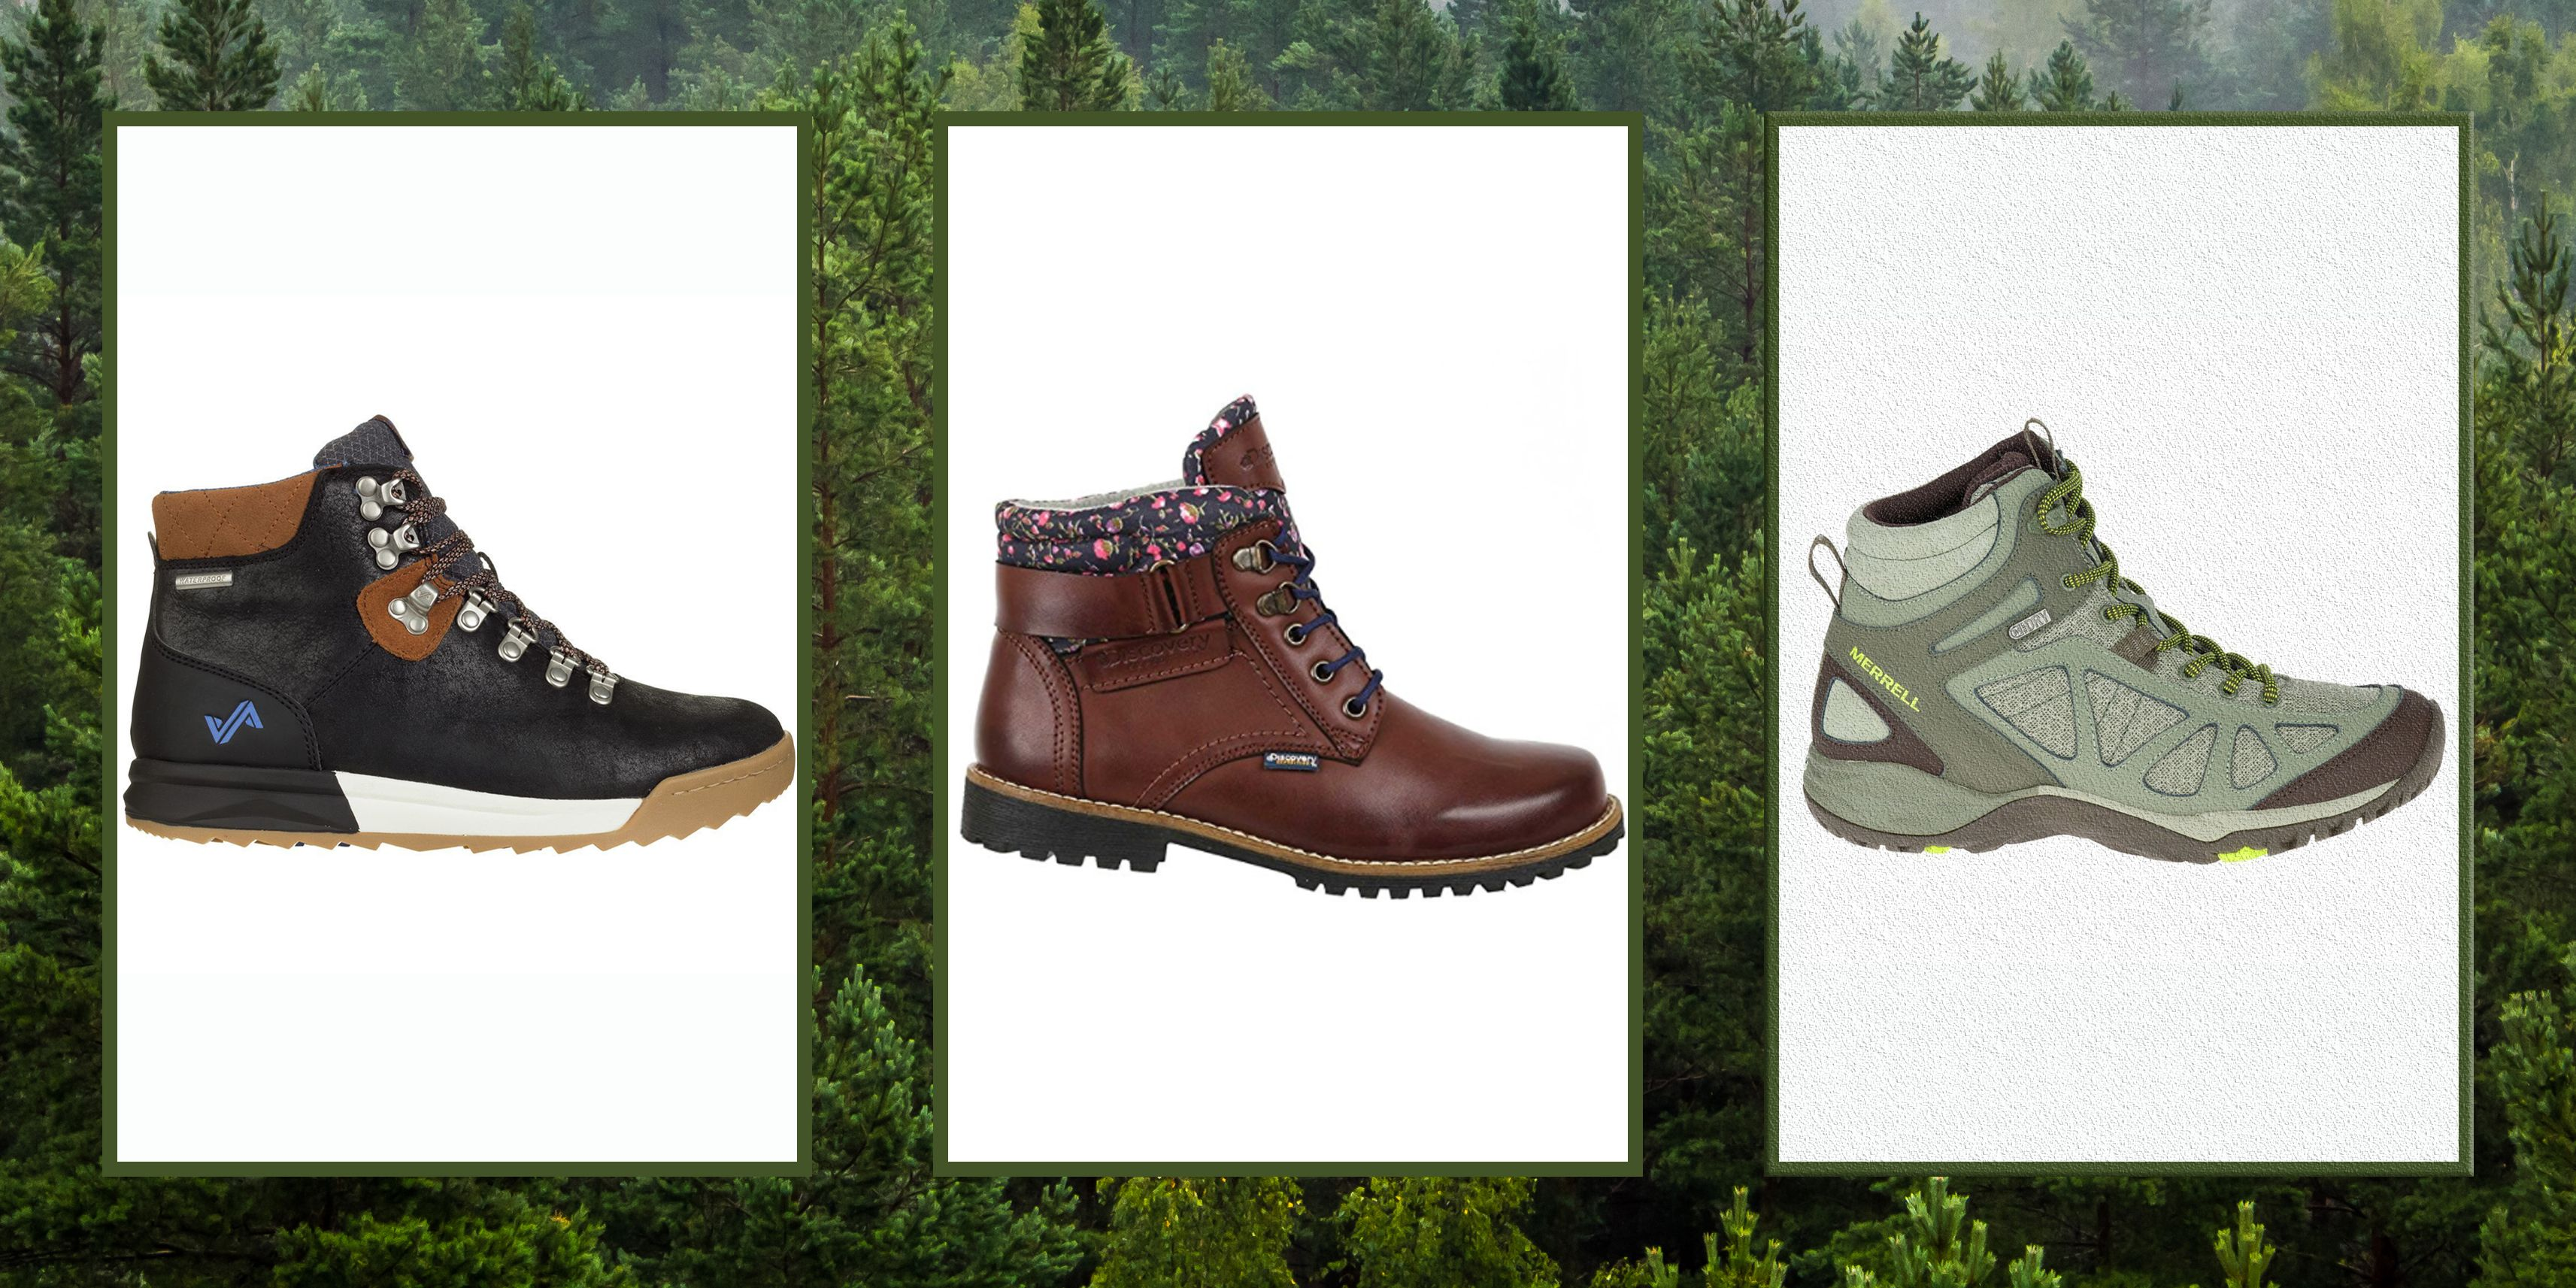 10 Best Hiking Boots for Women - Top